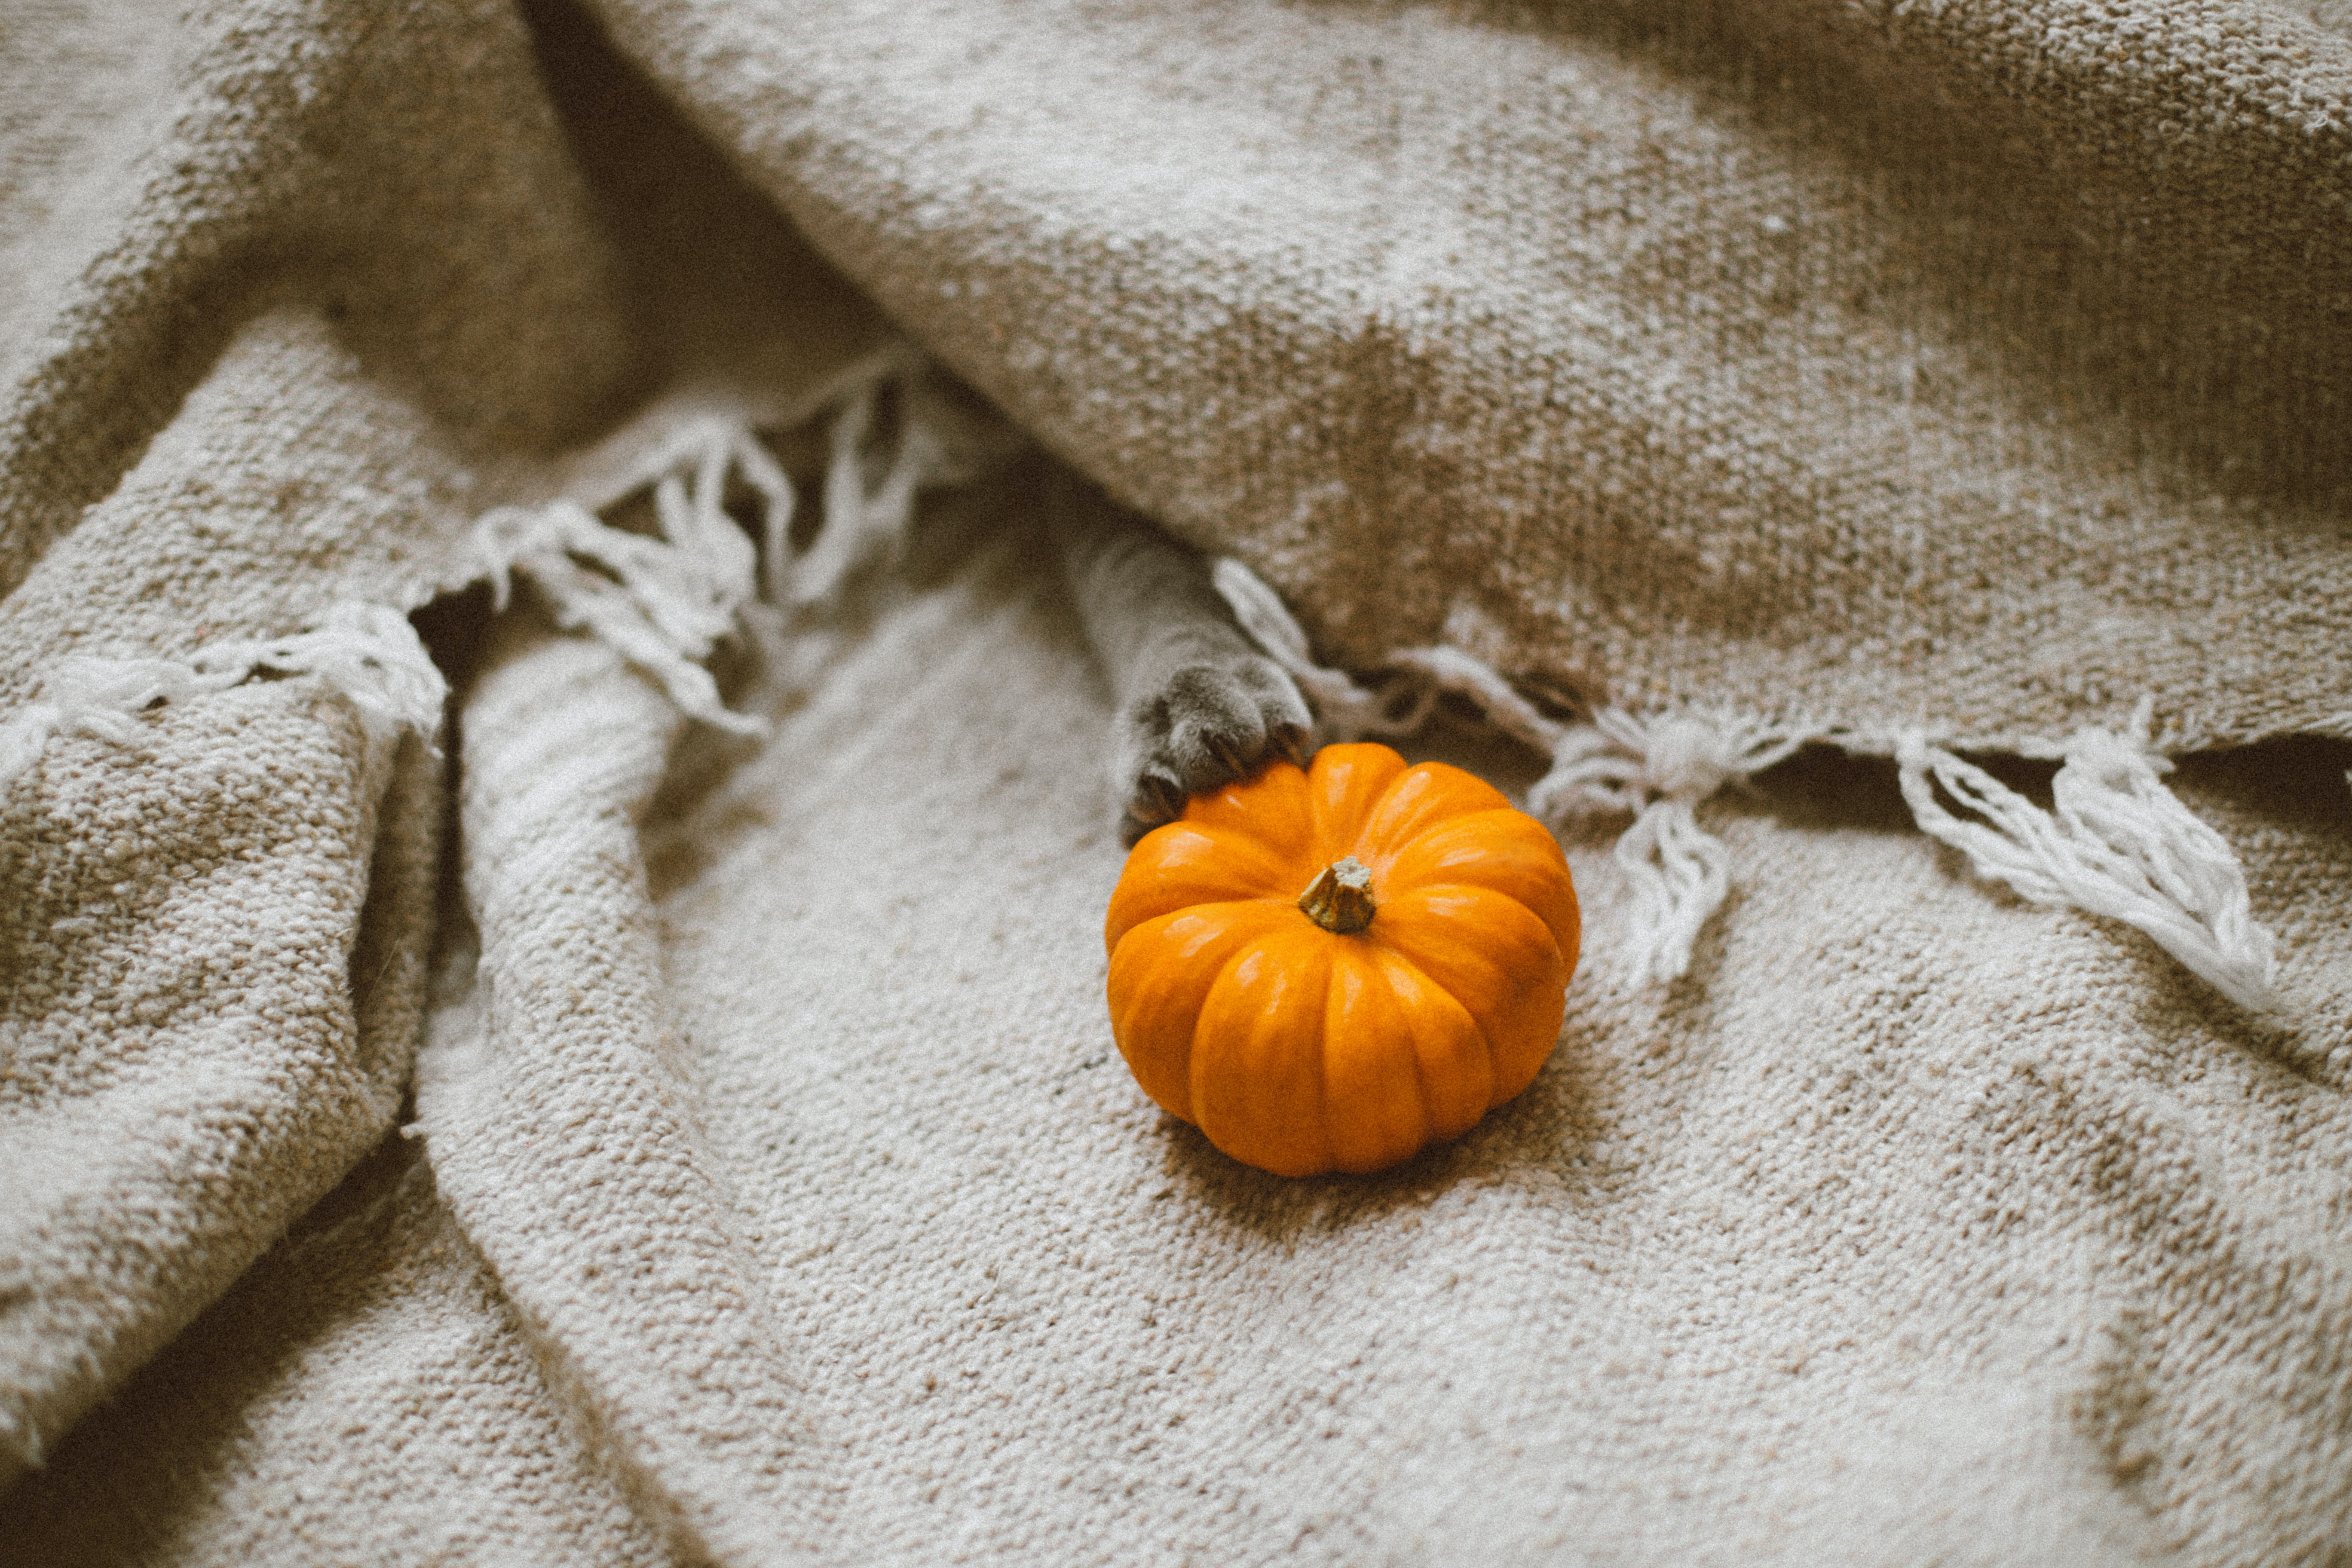 The paw of a cat and a tiny pumpkin with thick linen fabric in London